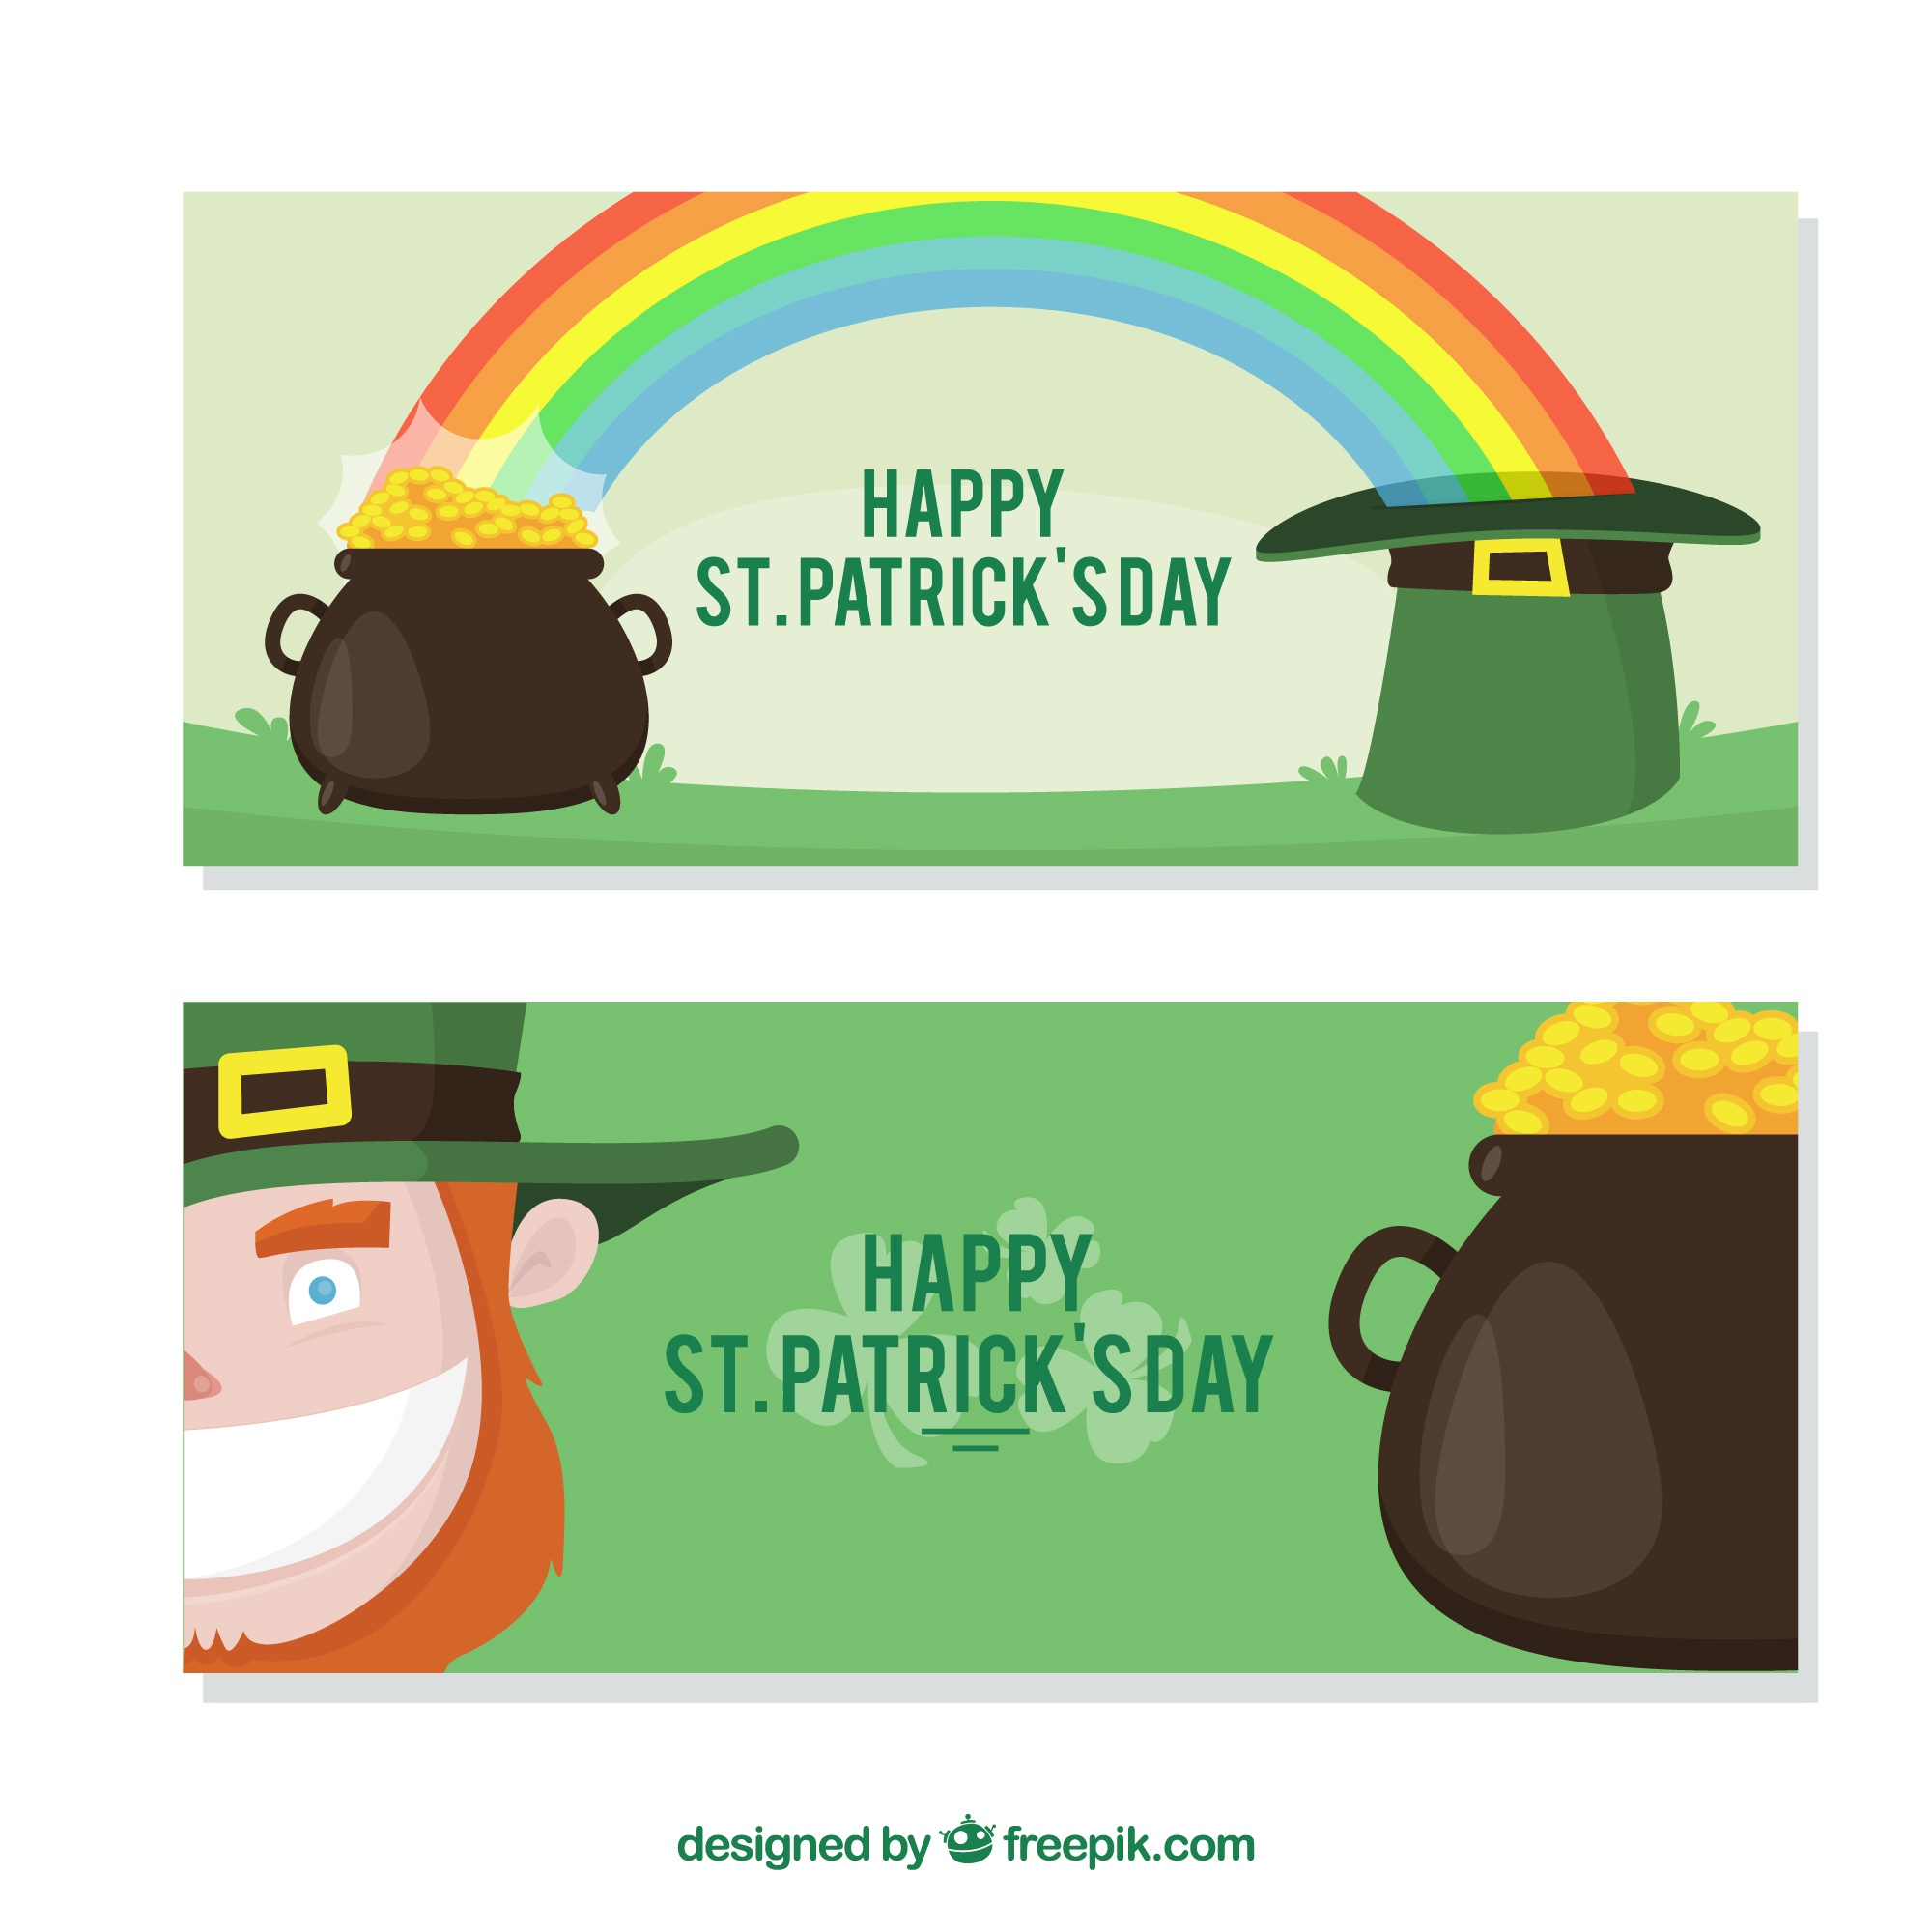 Fantastic banners with leprechaun and cauldron for st patrick's day